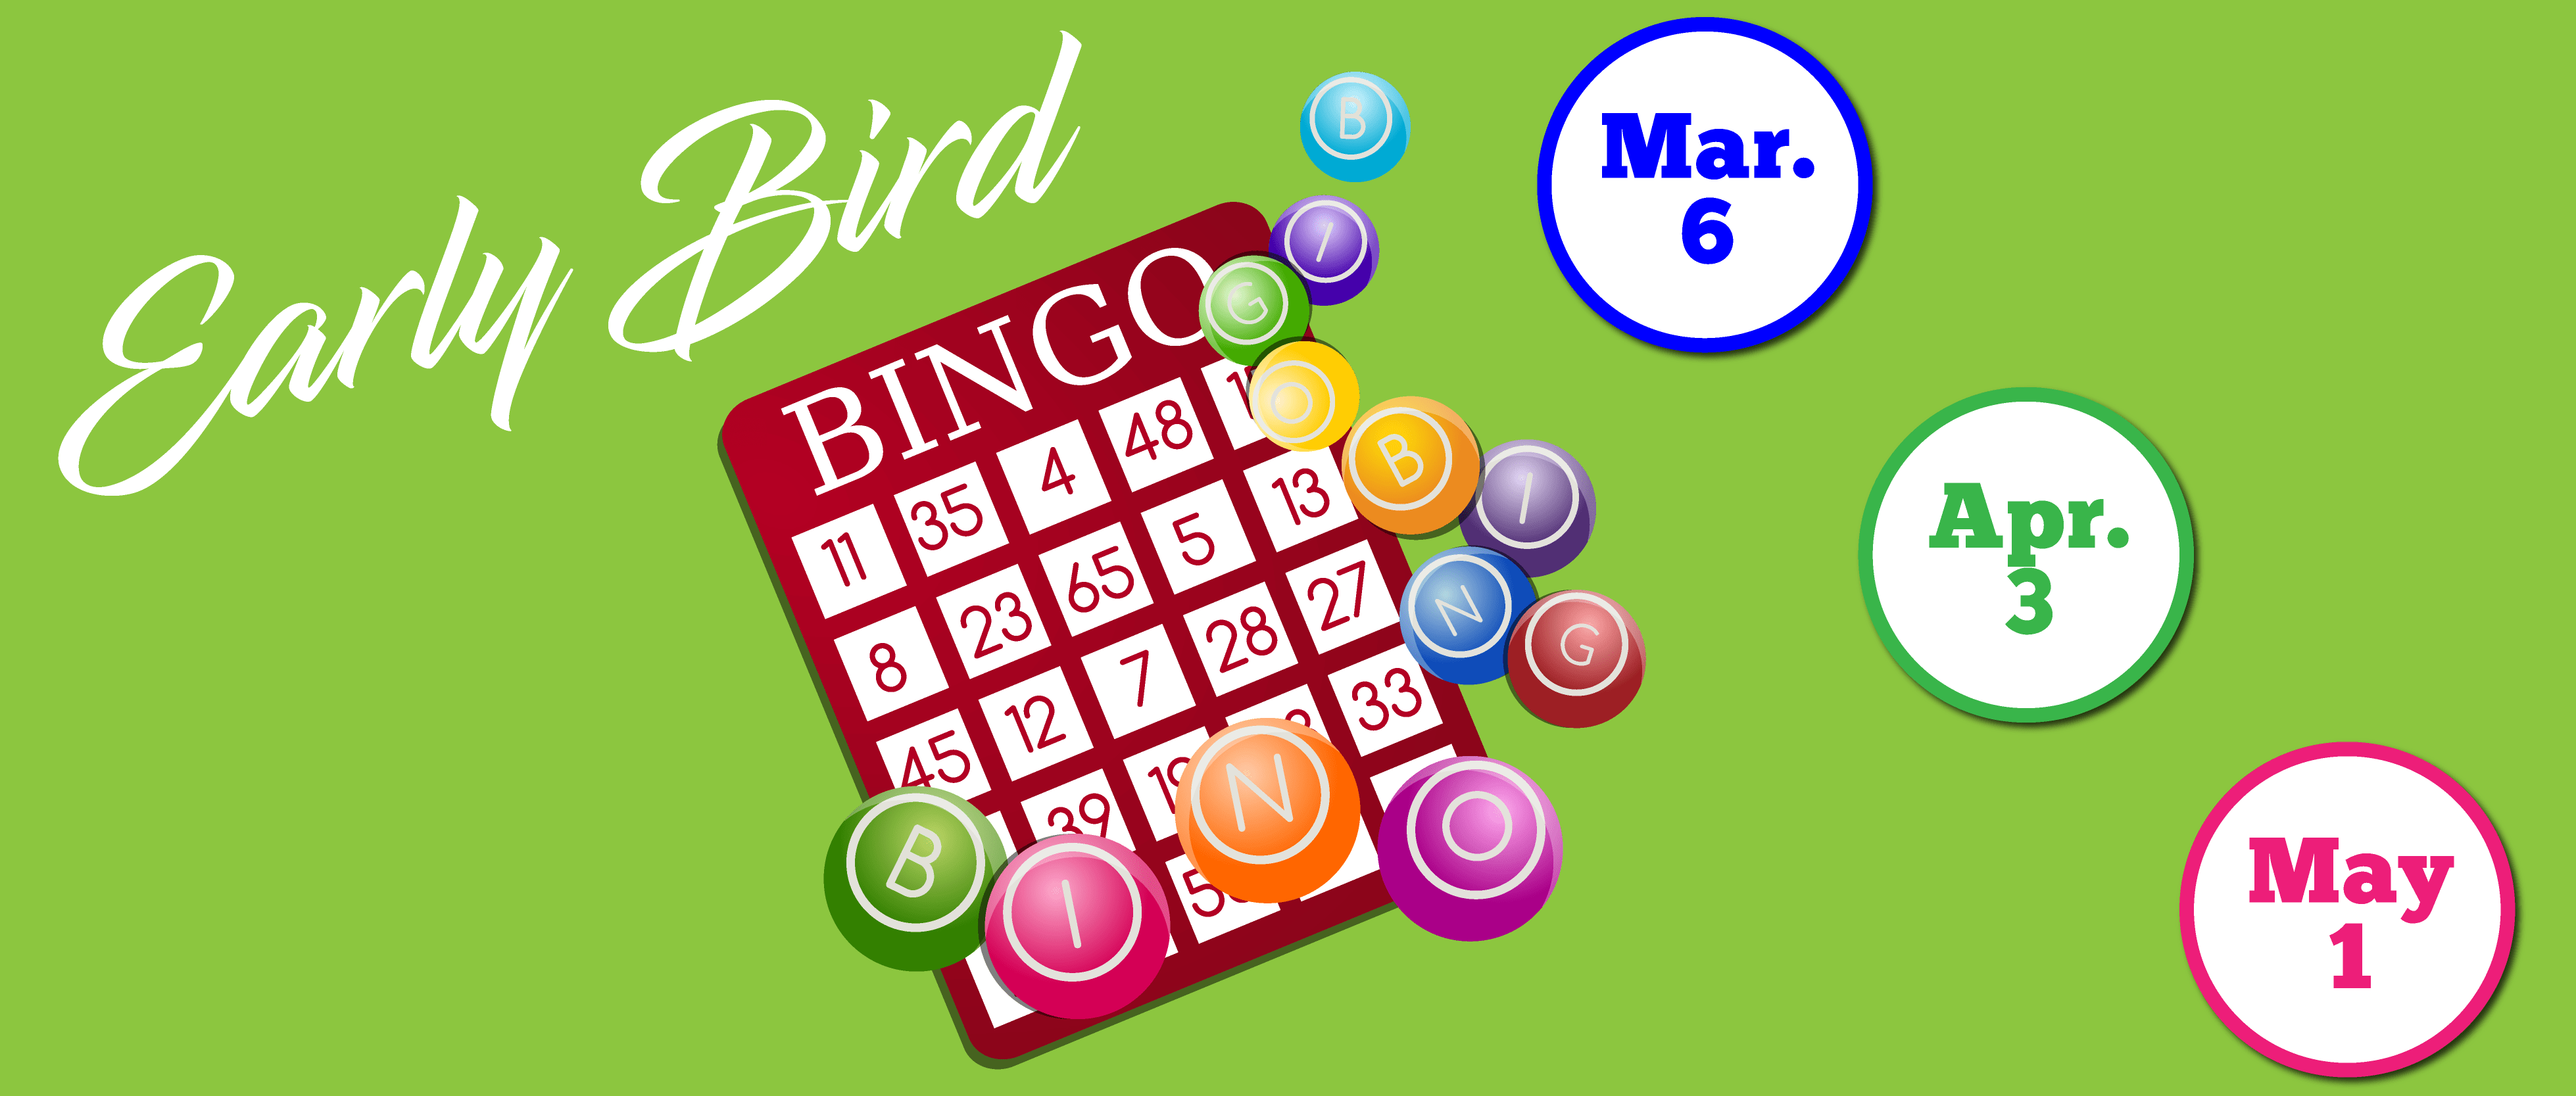 early-bird-bingo-wp